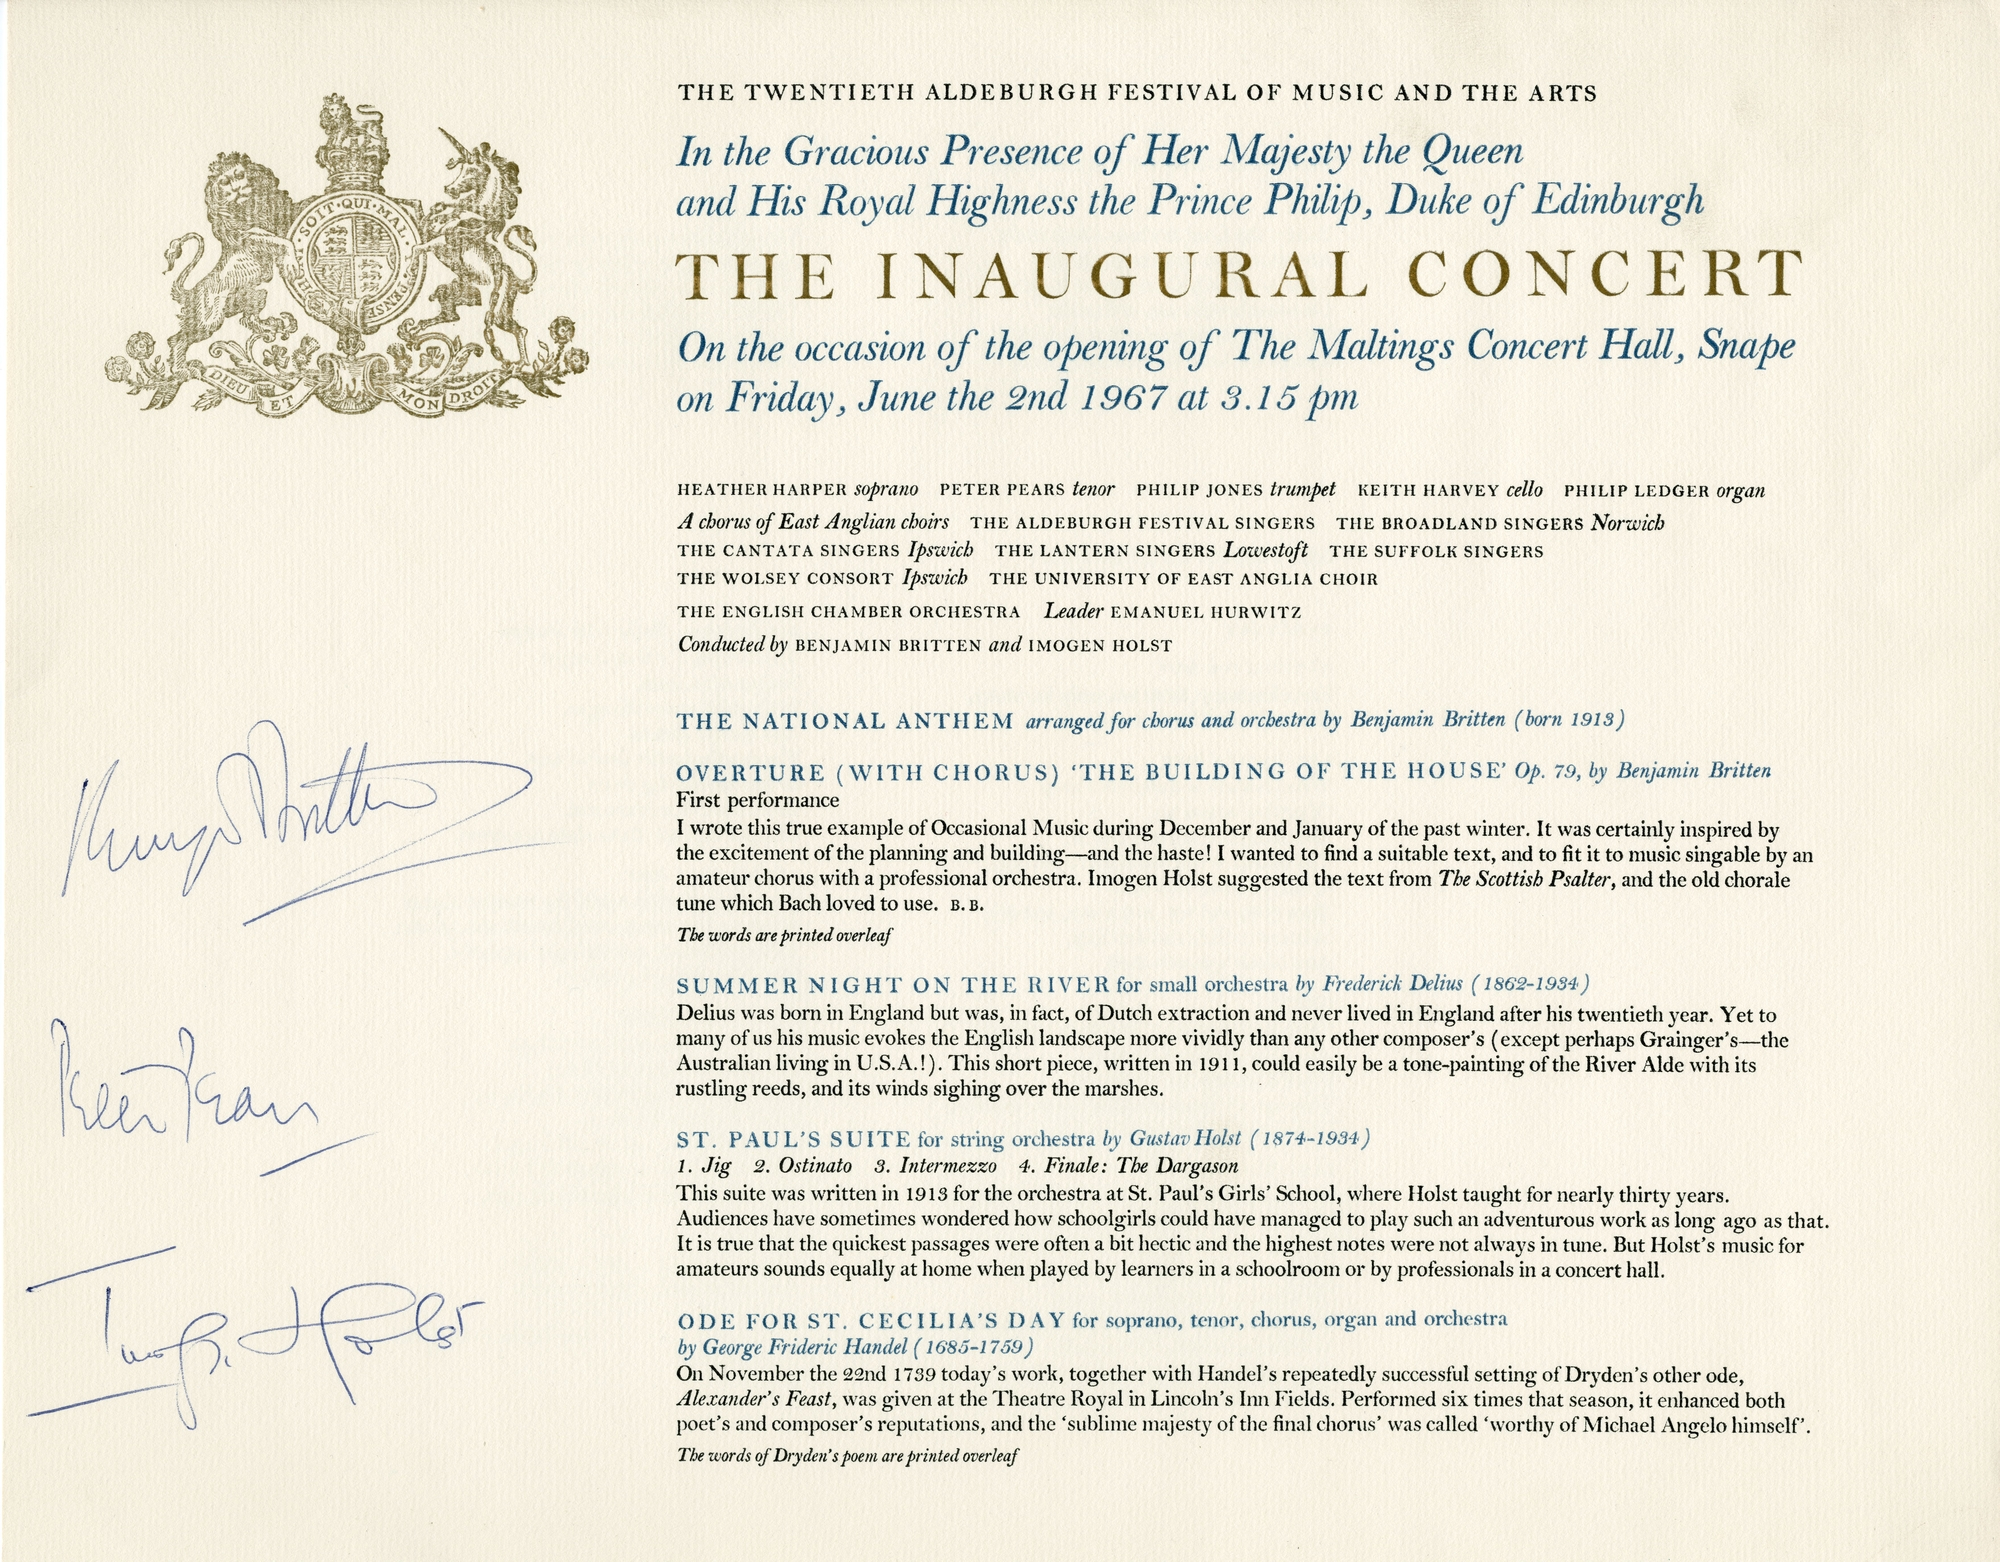 4. Programme for the inaugural concert of the 1967 Aldeburgh Festival celebrating the opening of Snape Maltings Concert Hall